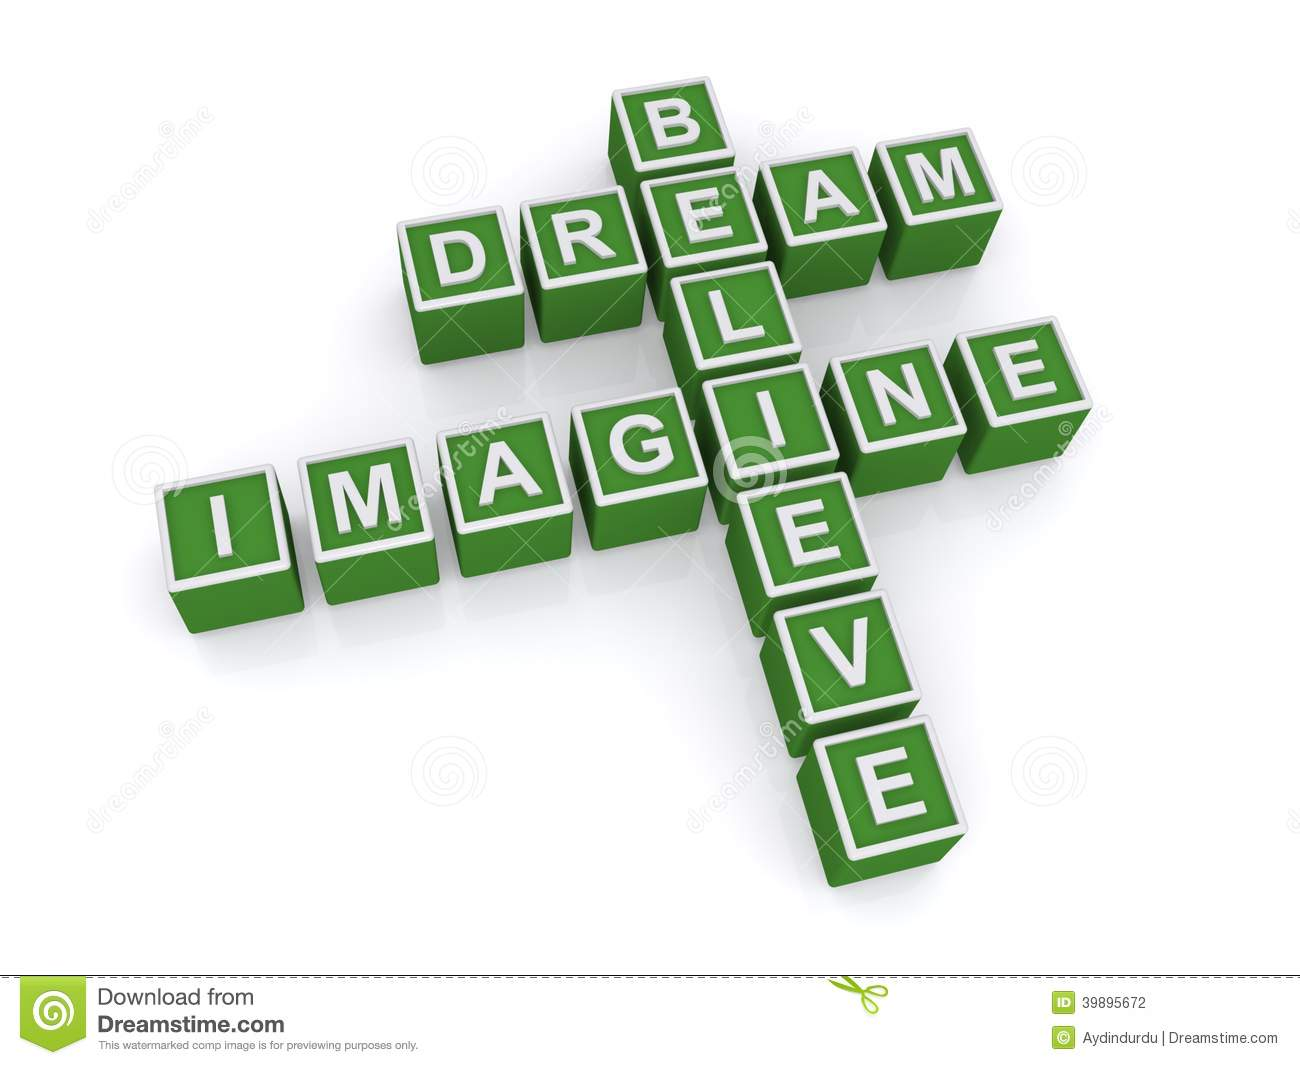 A Concept Image With Letter Cubes Forming A Crossword With The Words Imagine Dream And Believe